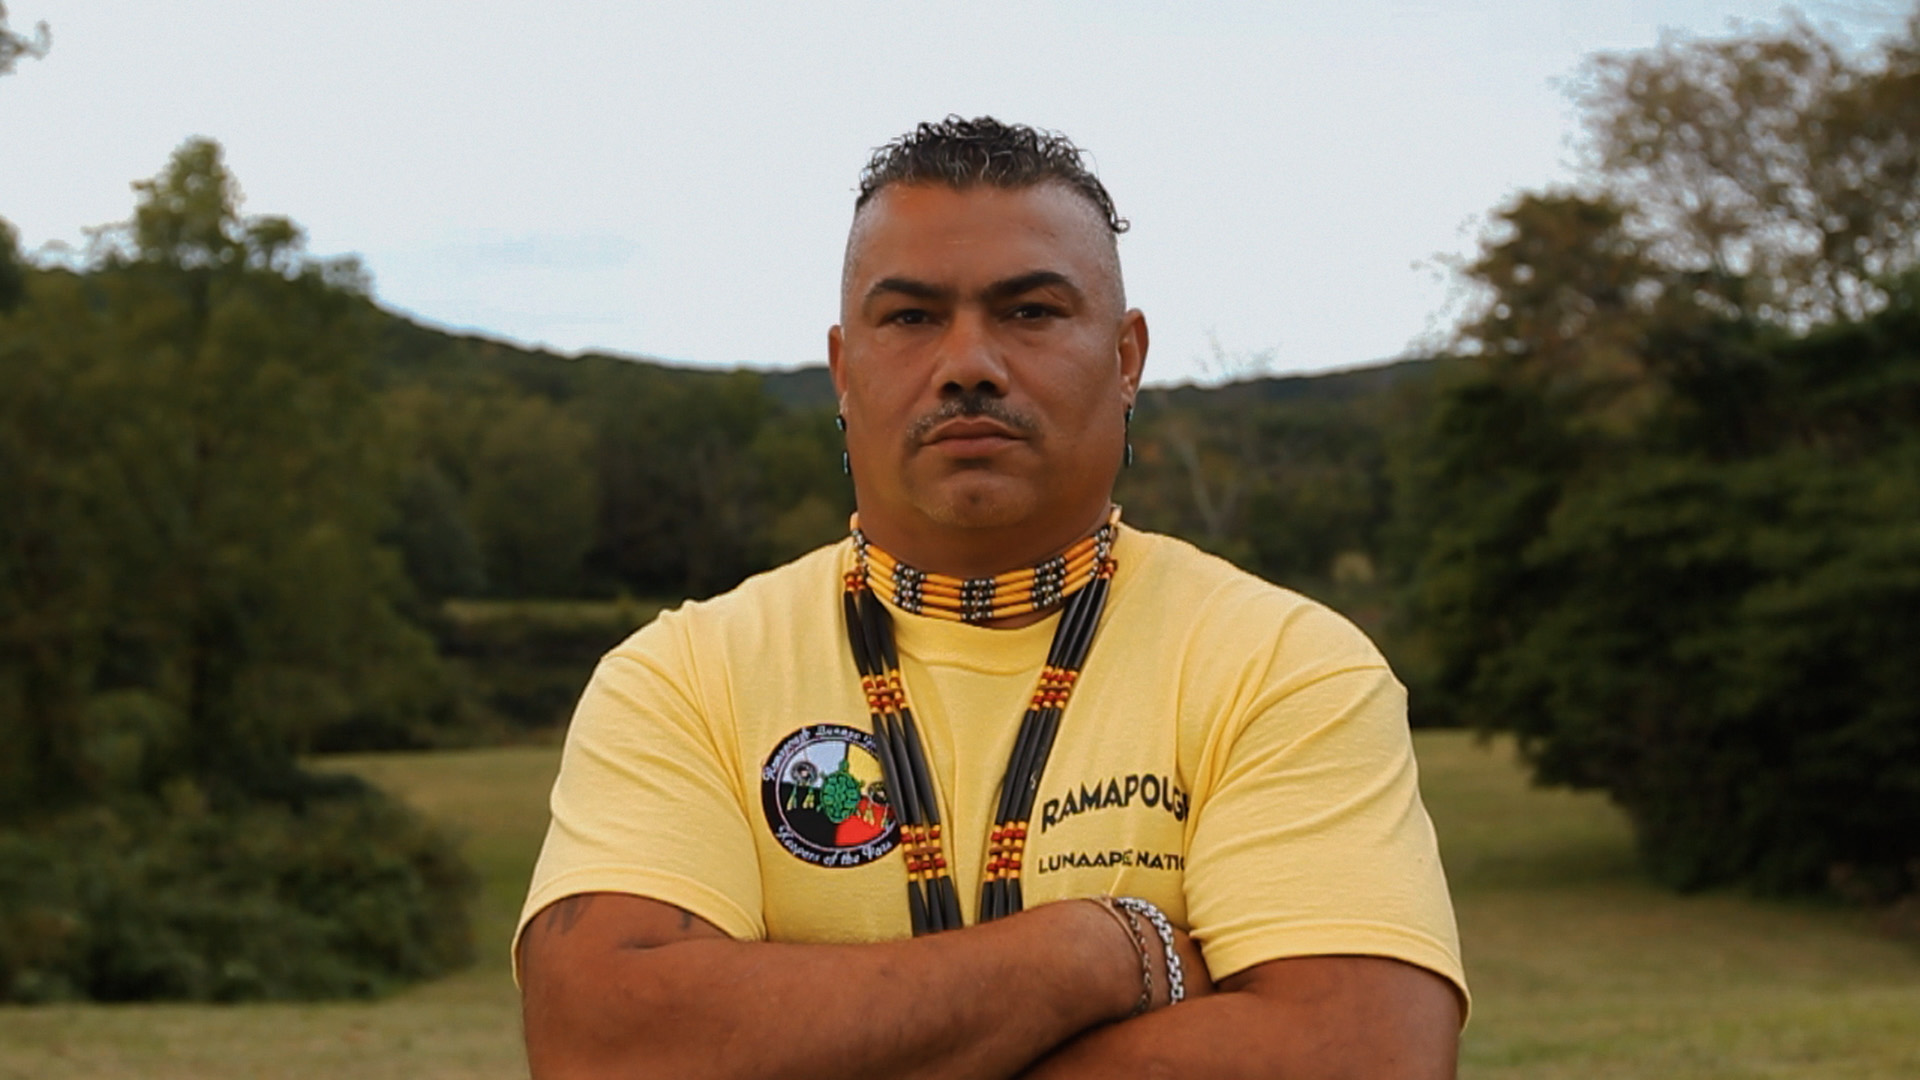 Ramapough-Clan-Chief-Vinny-Mann.jpg